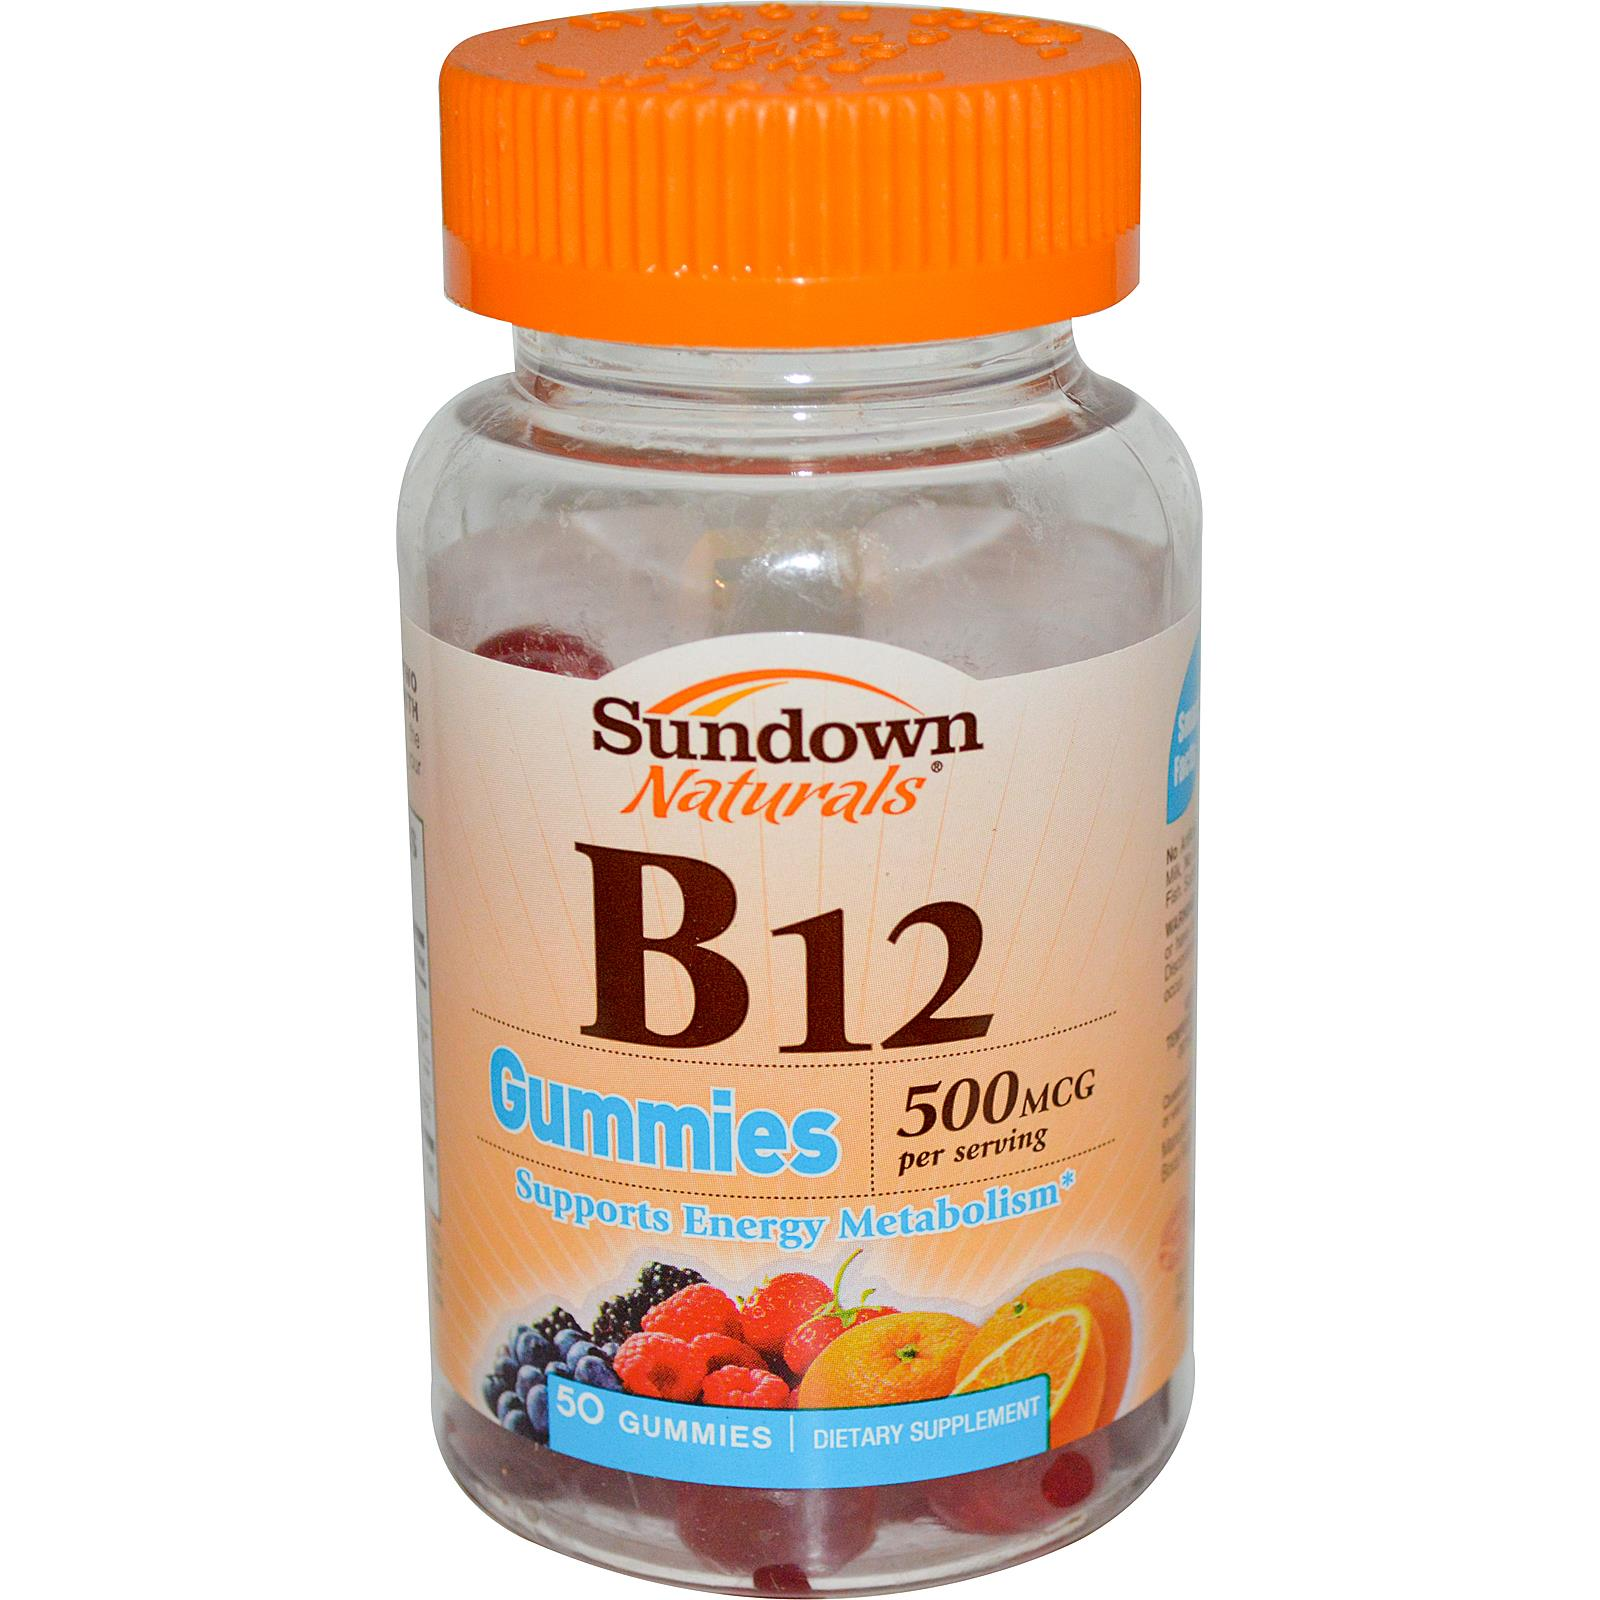 Sundown Naturals Vitamins – #SundownNaturalsGummies